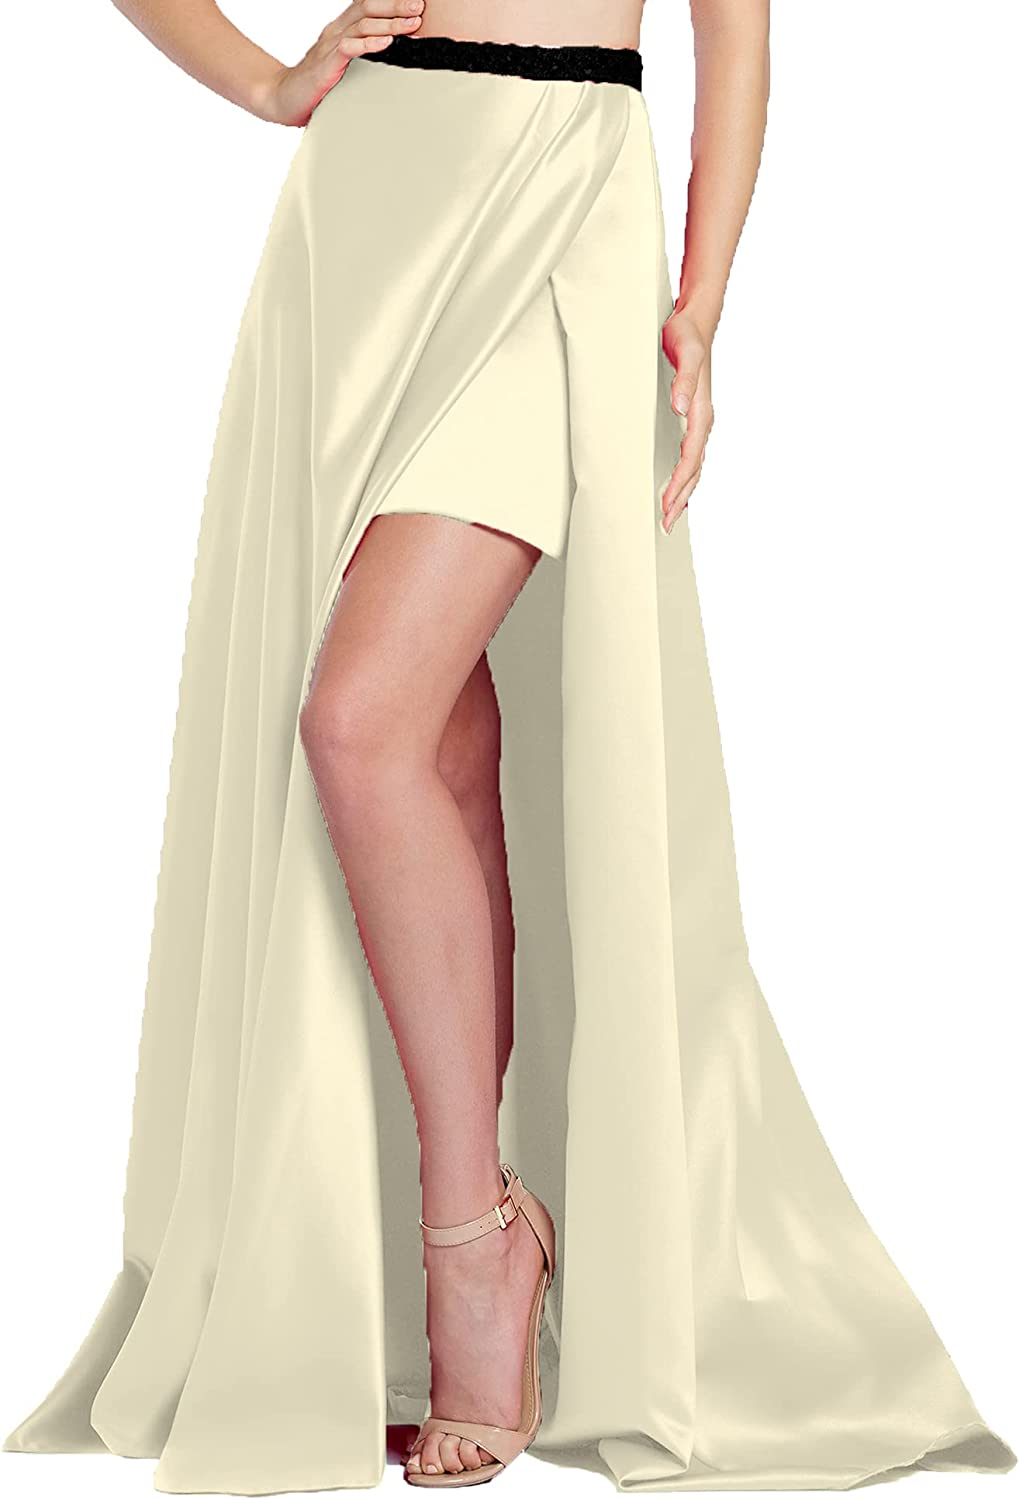 Gothic Maxi Satin Party Wear Casual Skirt One Side Slit Skirt Belly Dance One Size S77